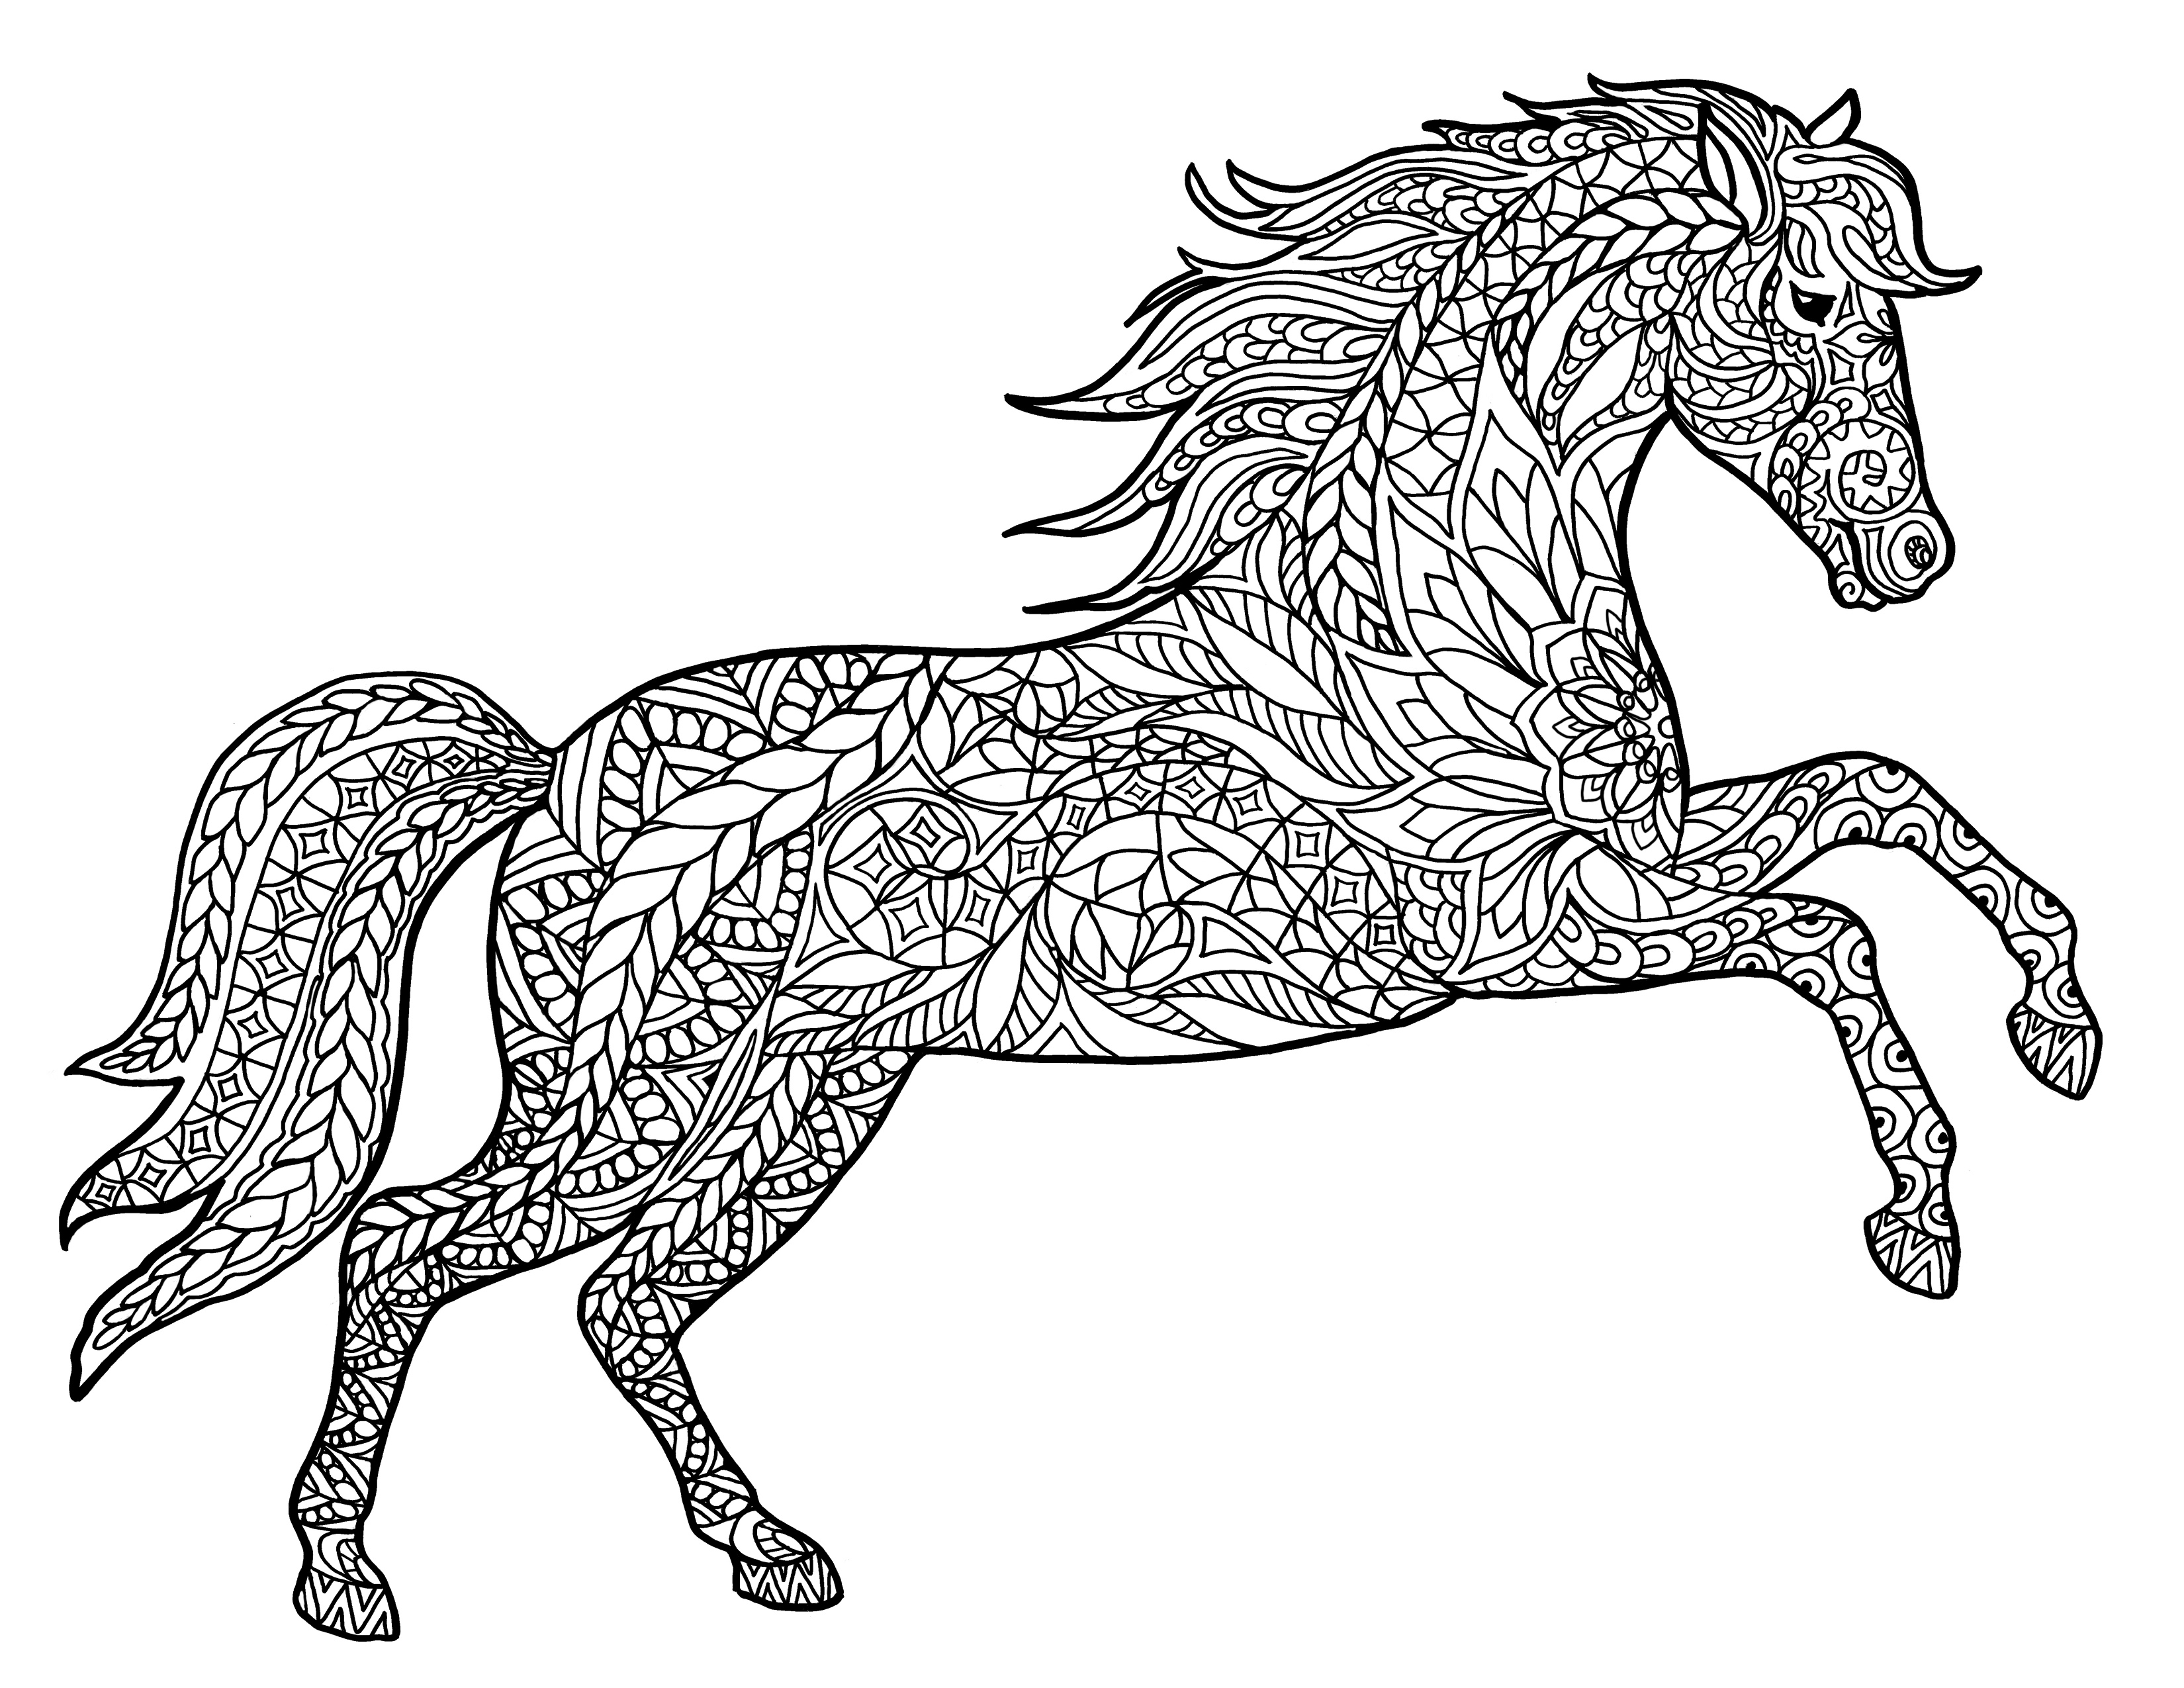 animals drawings to color animal coloring pages for adults best coloring pages for to color drawings animals